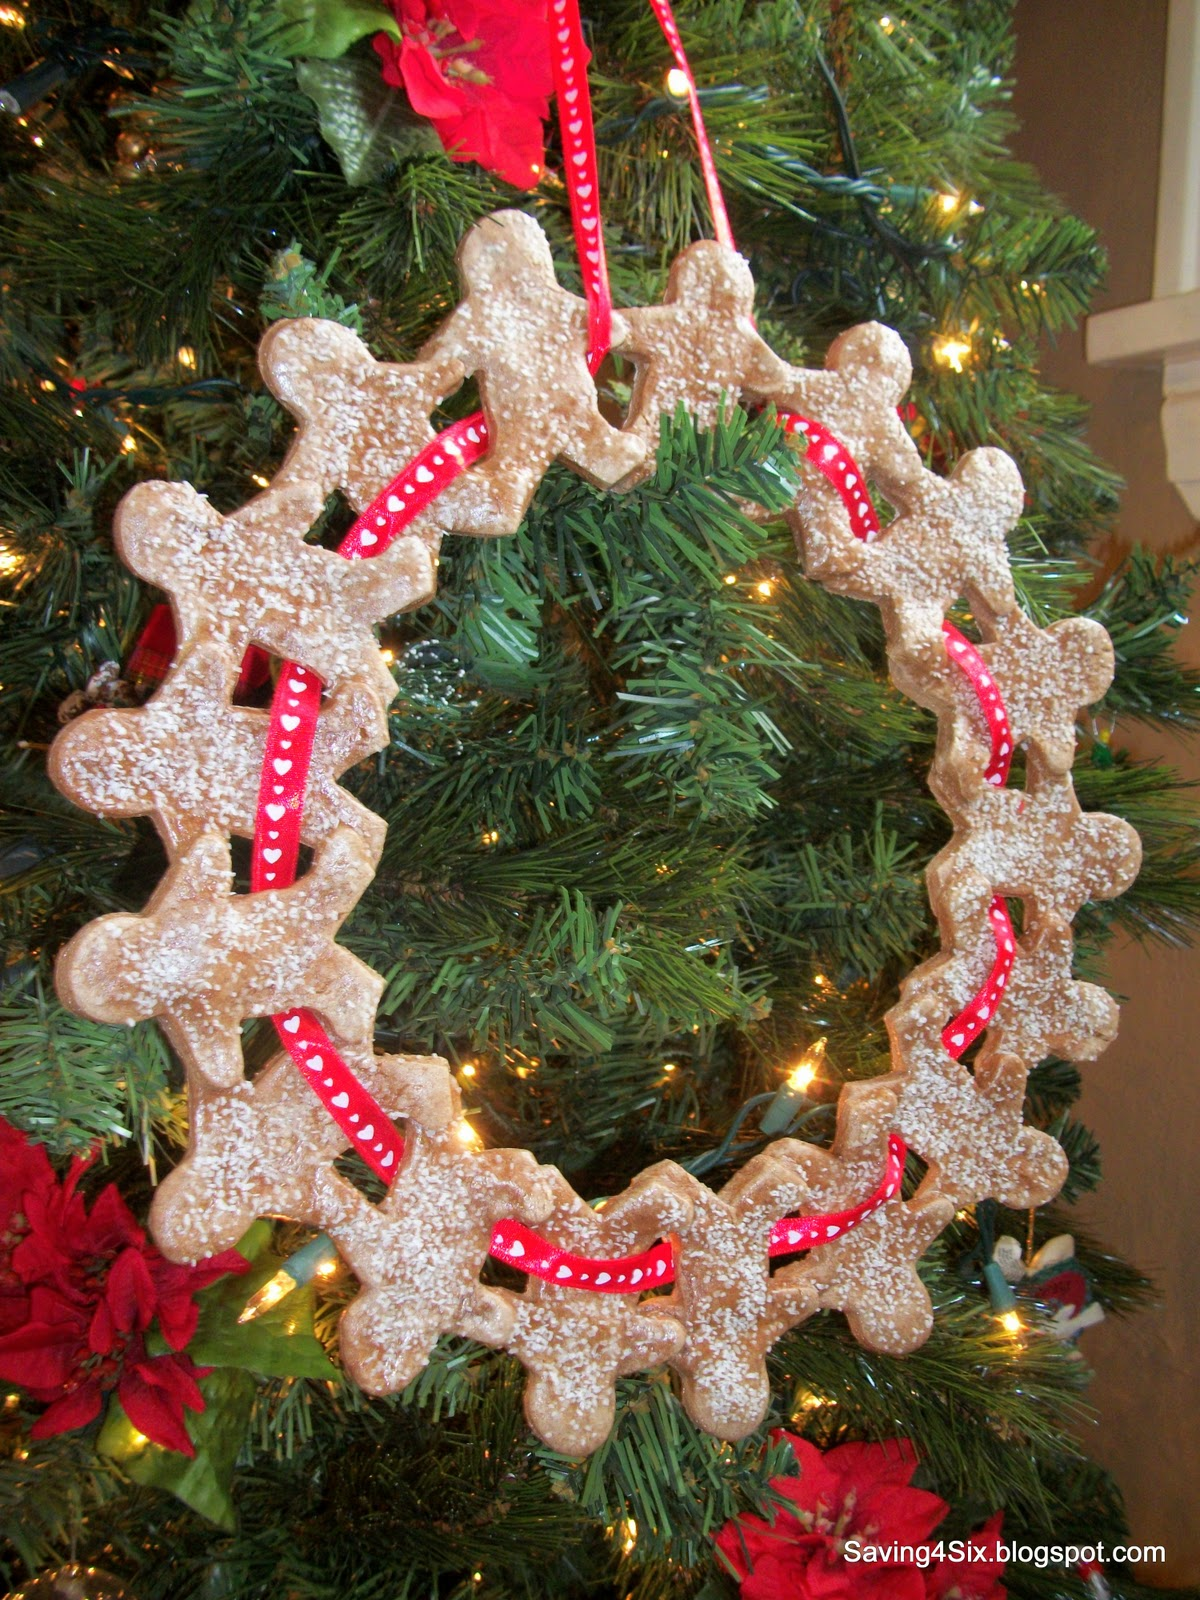 Gingerbread man ornaments - Finally I Weaved A Ribbon In And Out Of The Gingerbread Men And Then Just Tied It At The Top